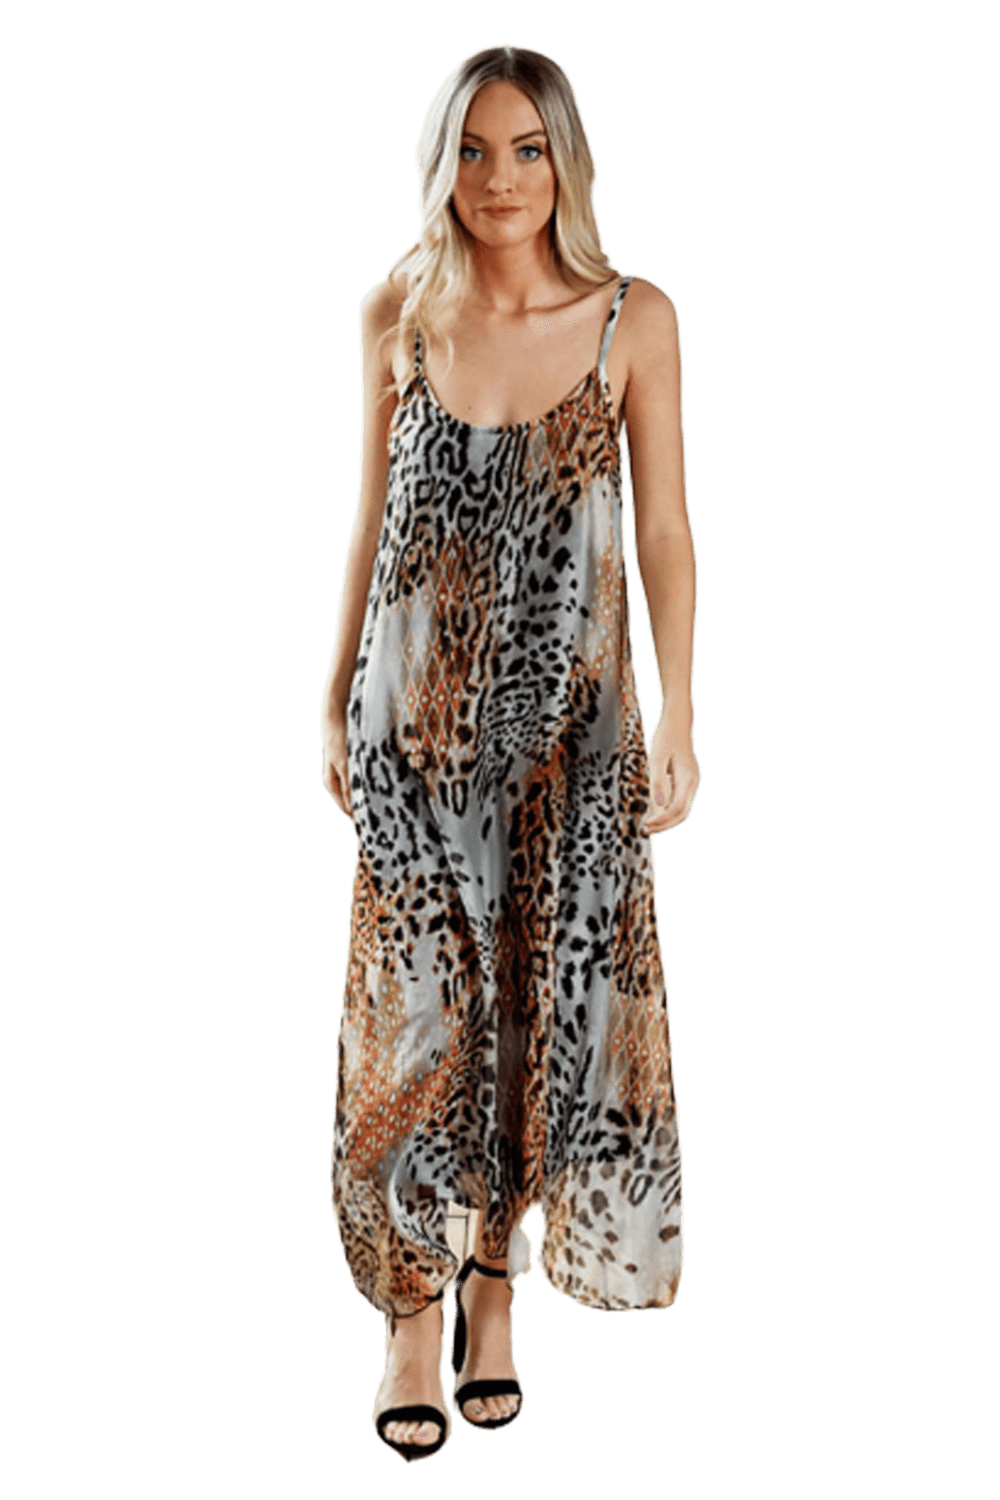 shop-sofia ANA TIGER MAXI DRESS Sofia Collections Italian Silk Linen Satin